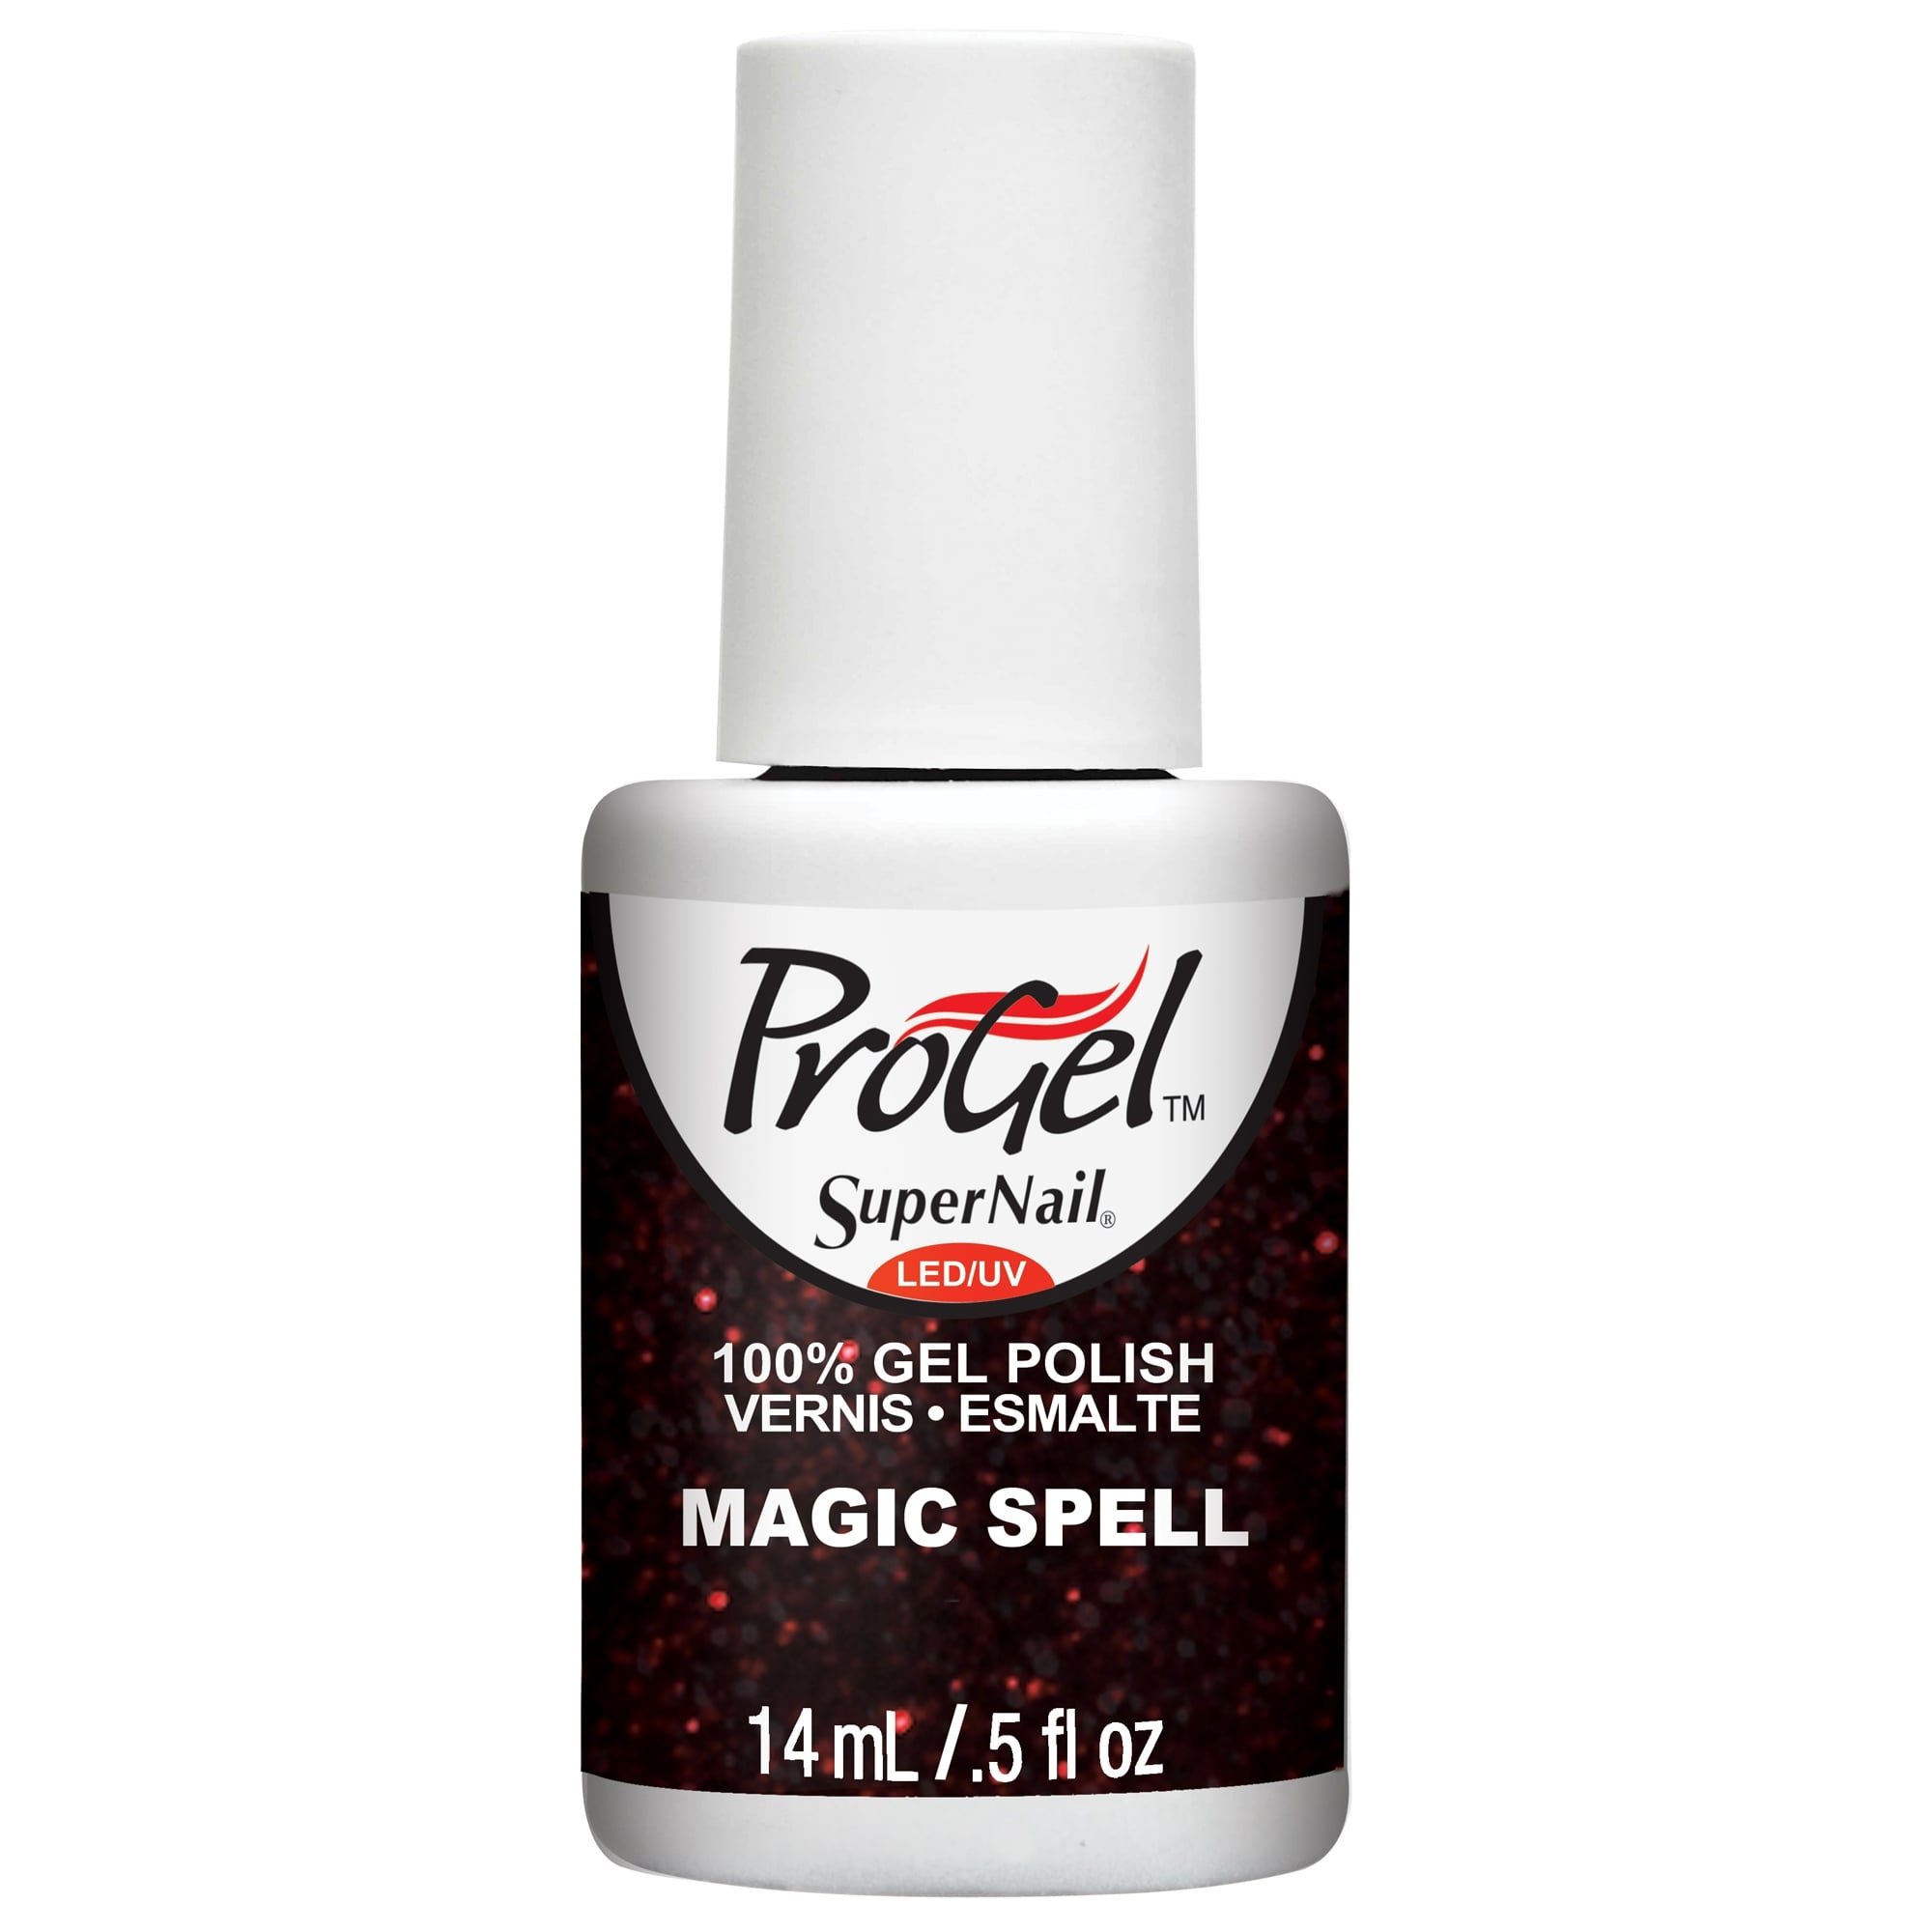 SuperNail ProGel Nail Polish - Magic Spell 14mL | Professional Nails